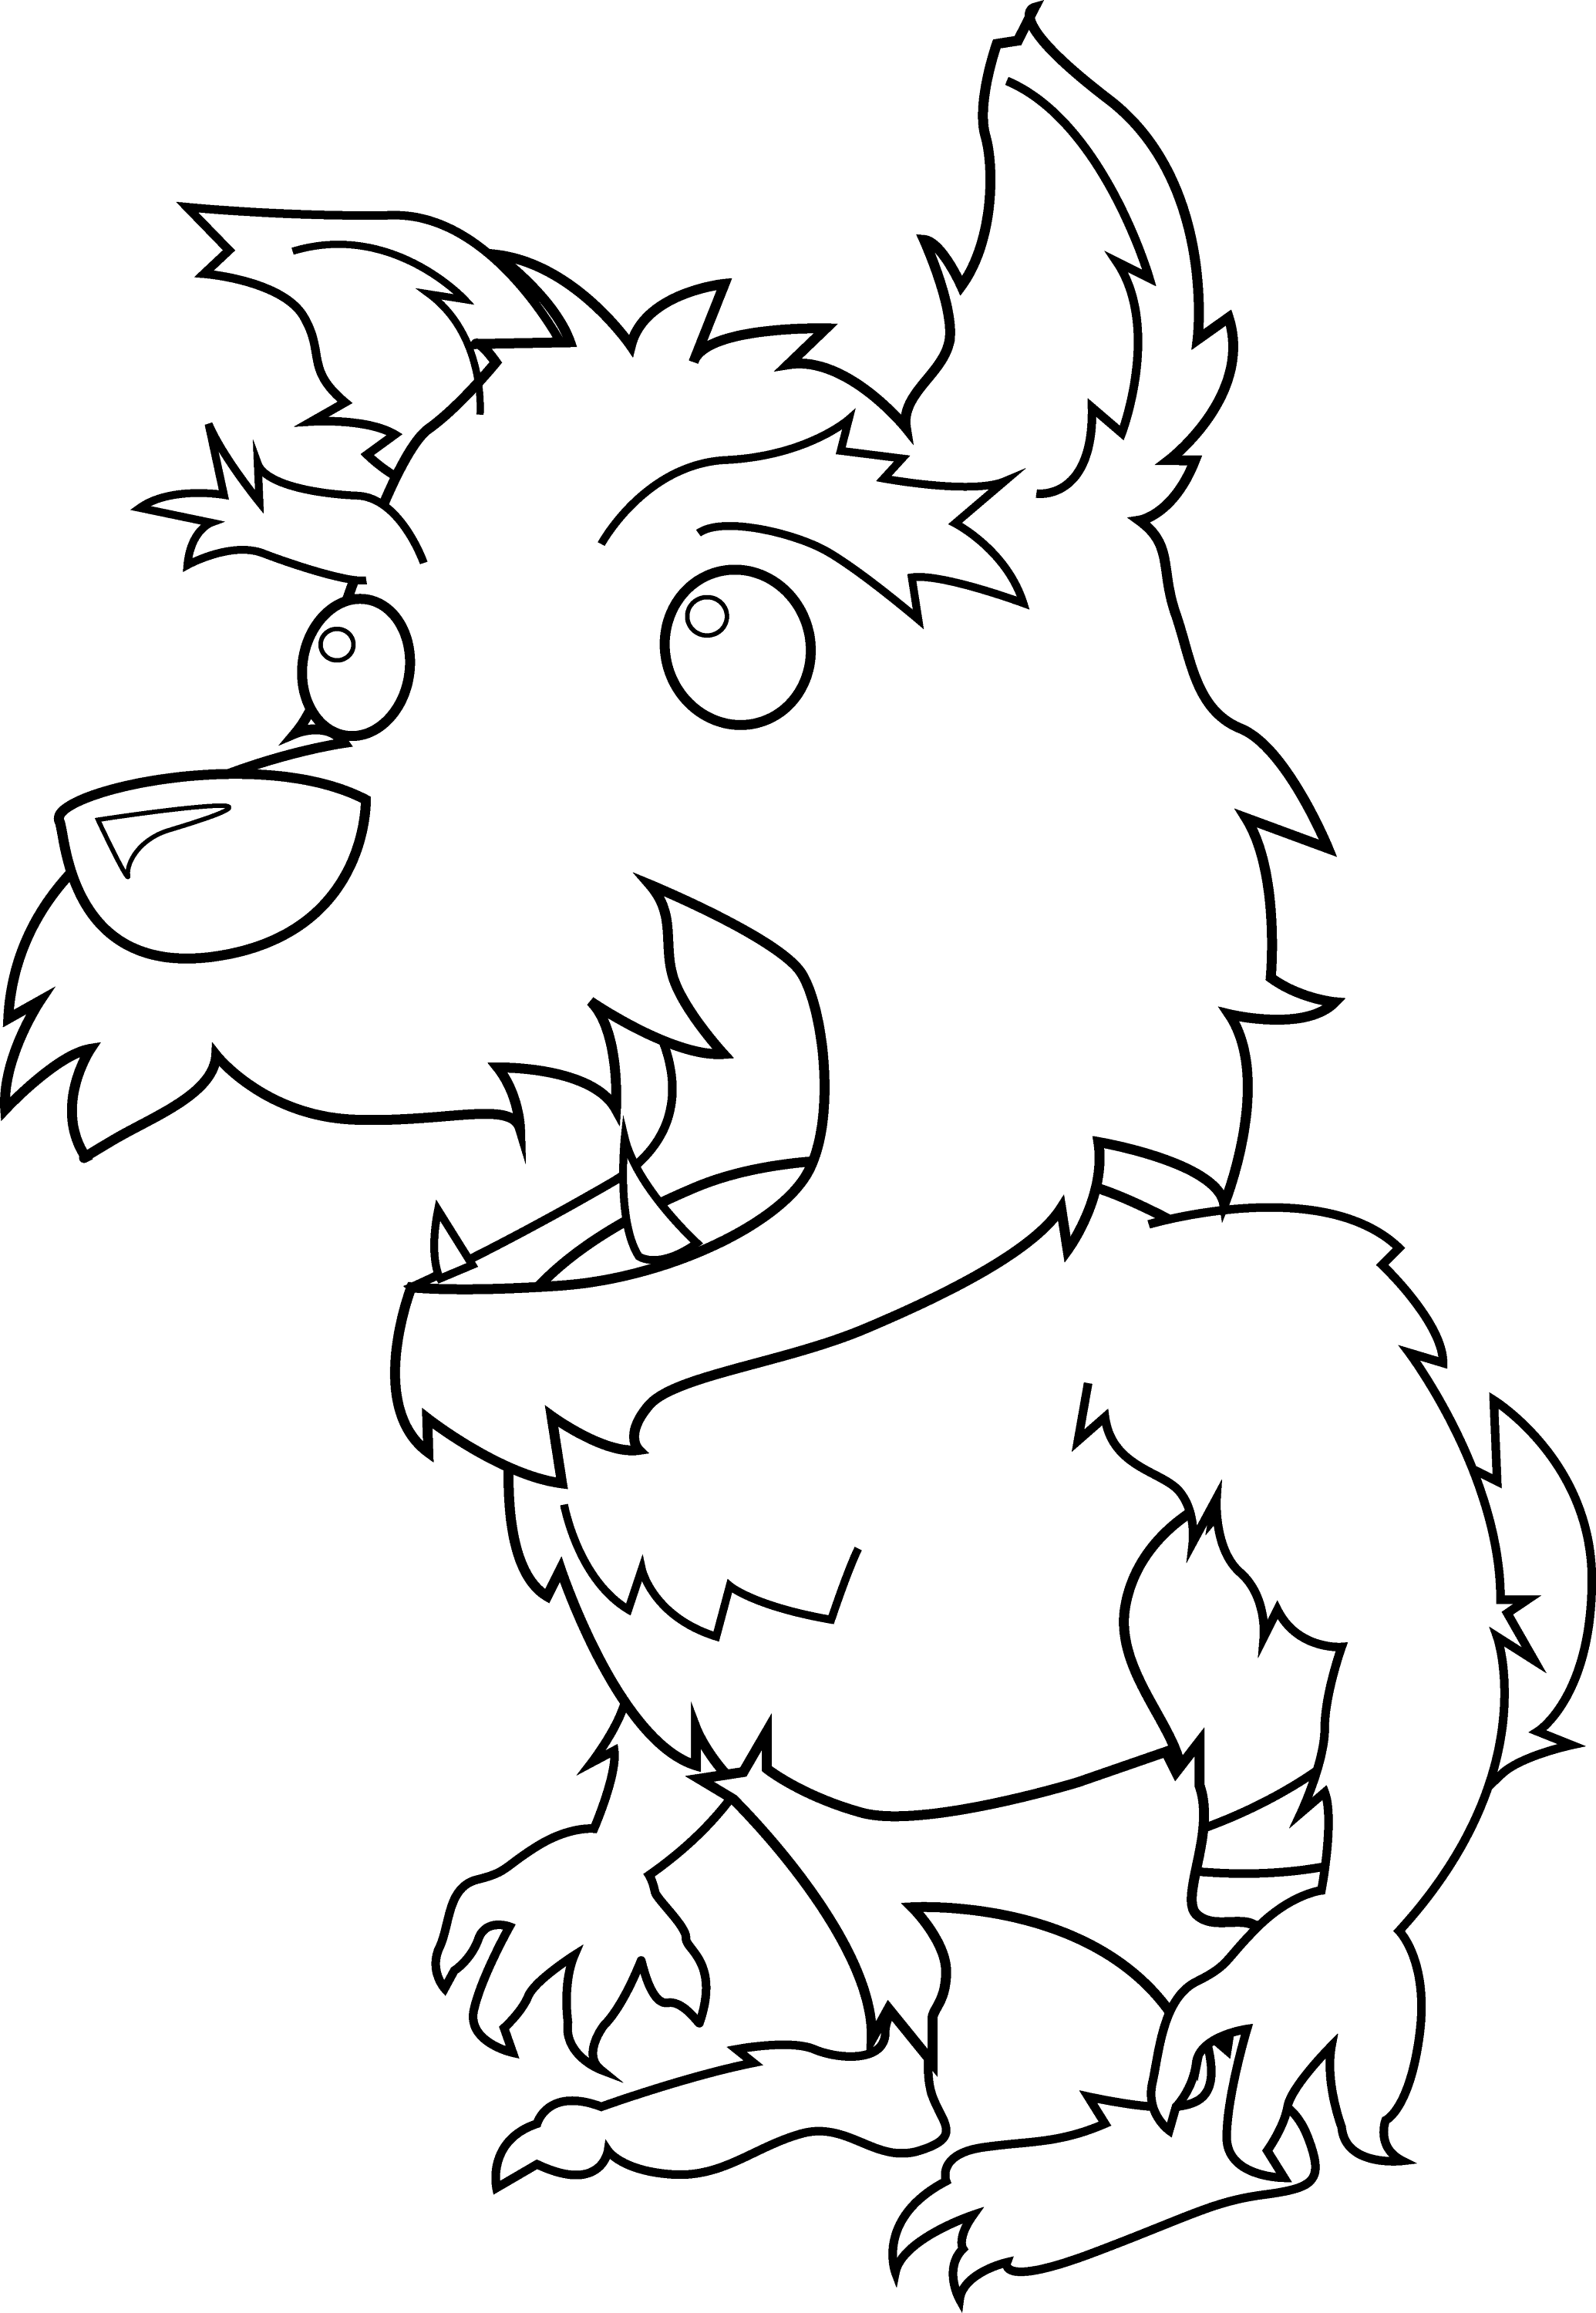 werewolf coloring page scary little werewolf coloring page free clip art coloring page werewolf